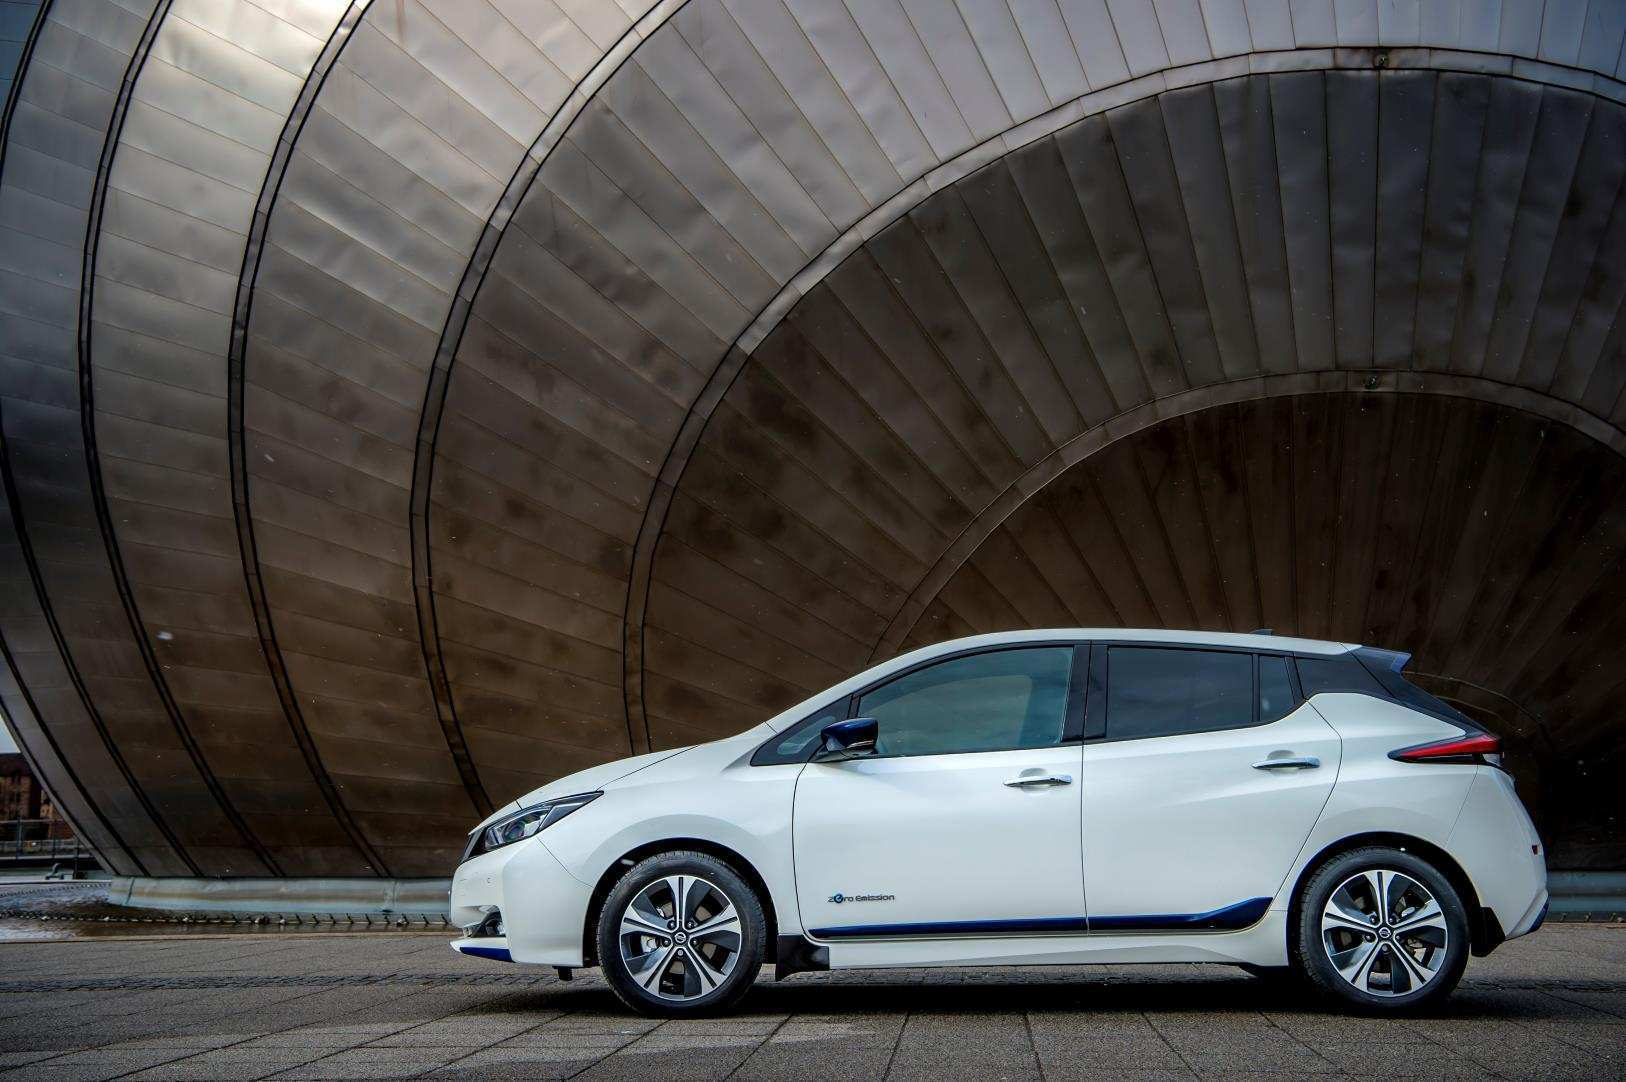 56 Concept of Nissan Leaf 2019 60 Kwh Exterior and Interior for Nissan Leaf 2019 60 Kwh